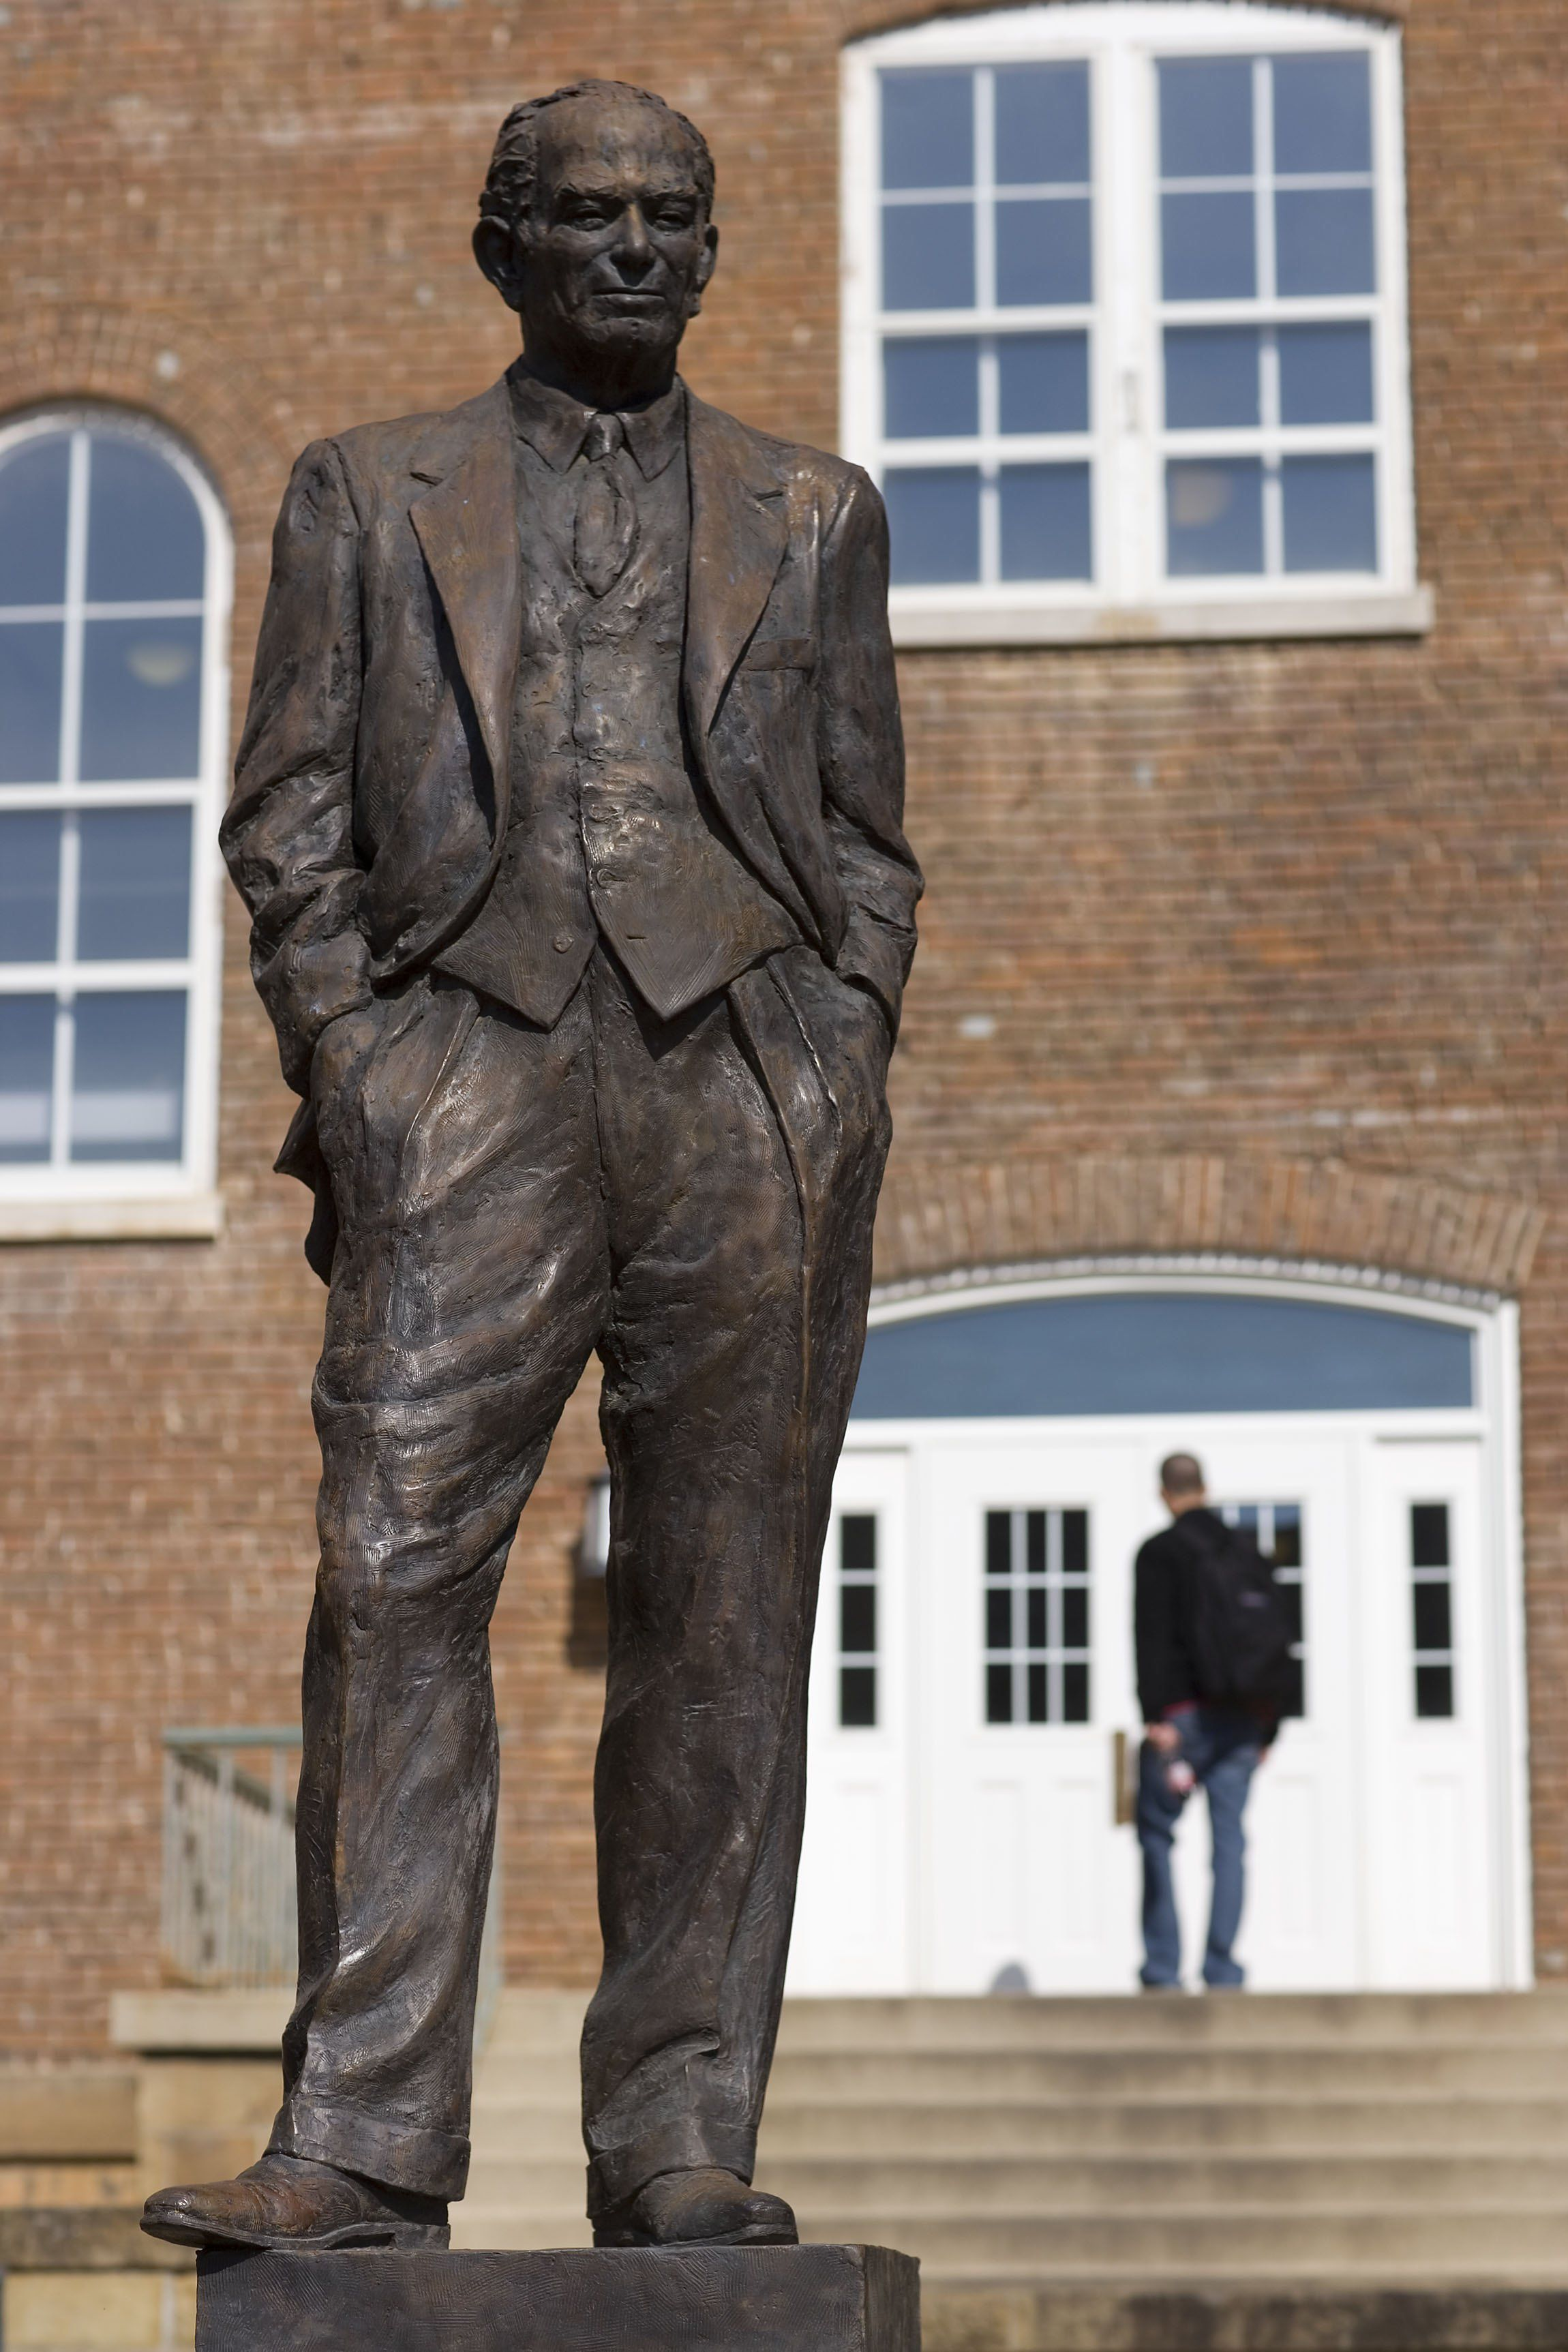 The J. William Fulbright statue behind the Old Main building on the University of Arkansas campus. Photo: Wesley Hitt/Getty Images